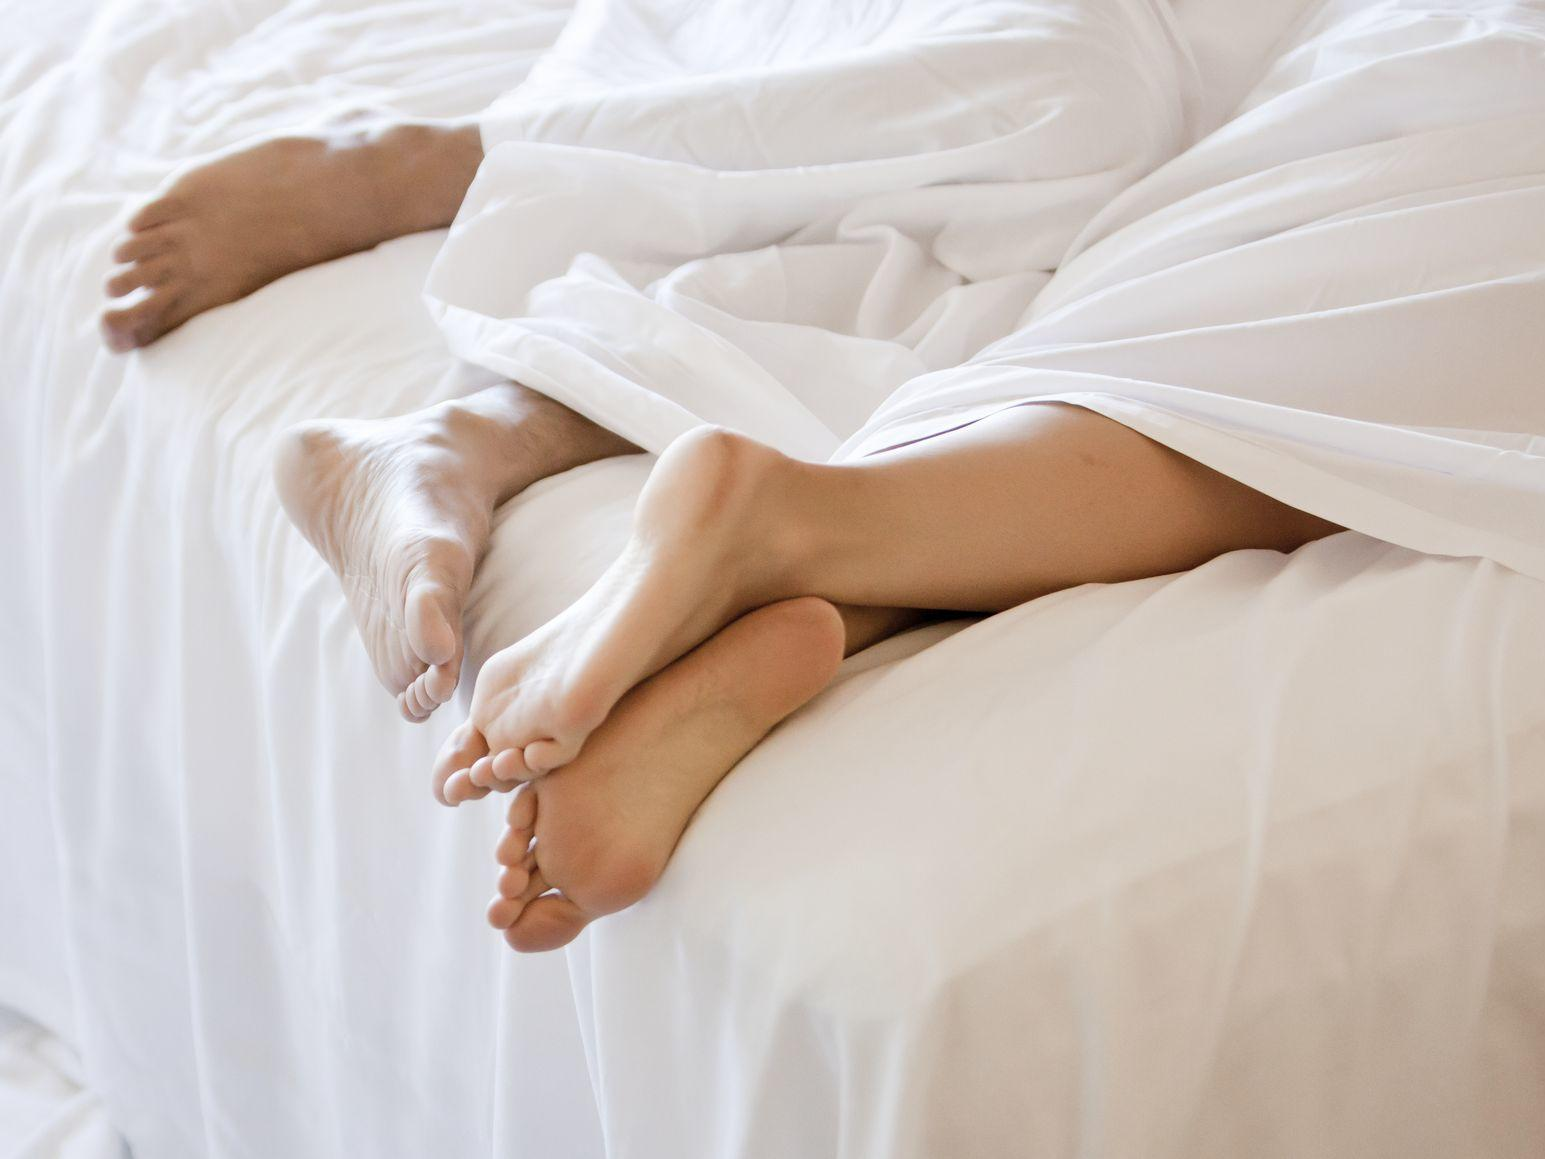 Pair of feet sticking out from white bedsheets.